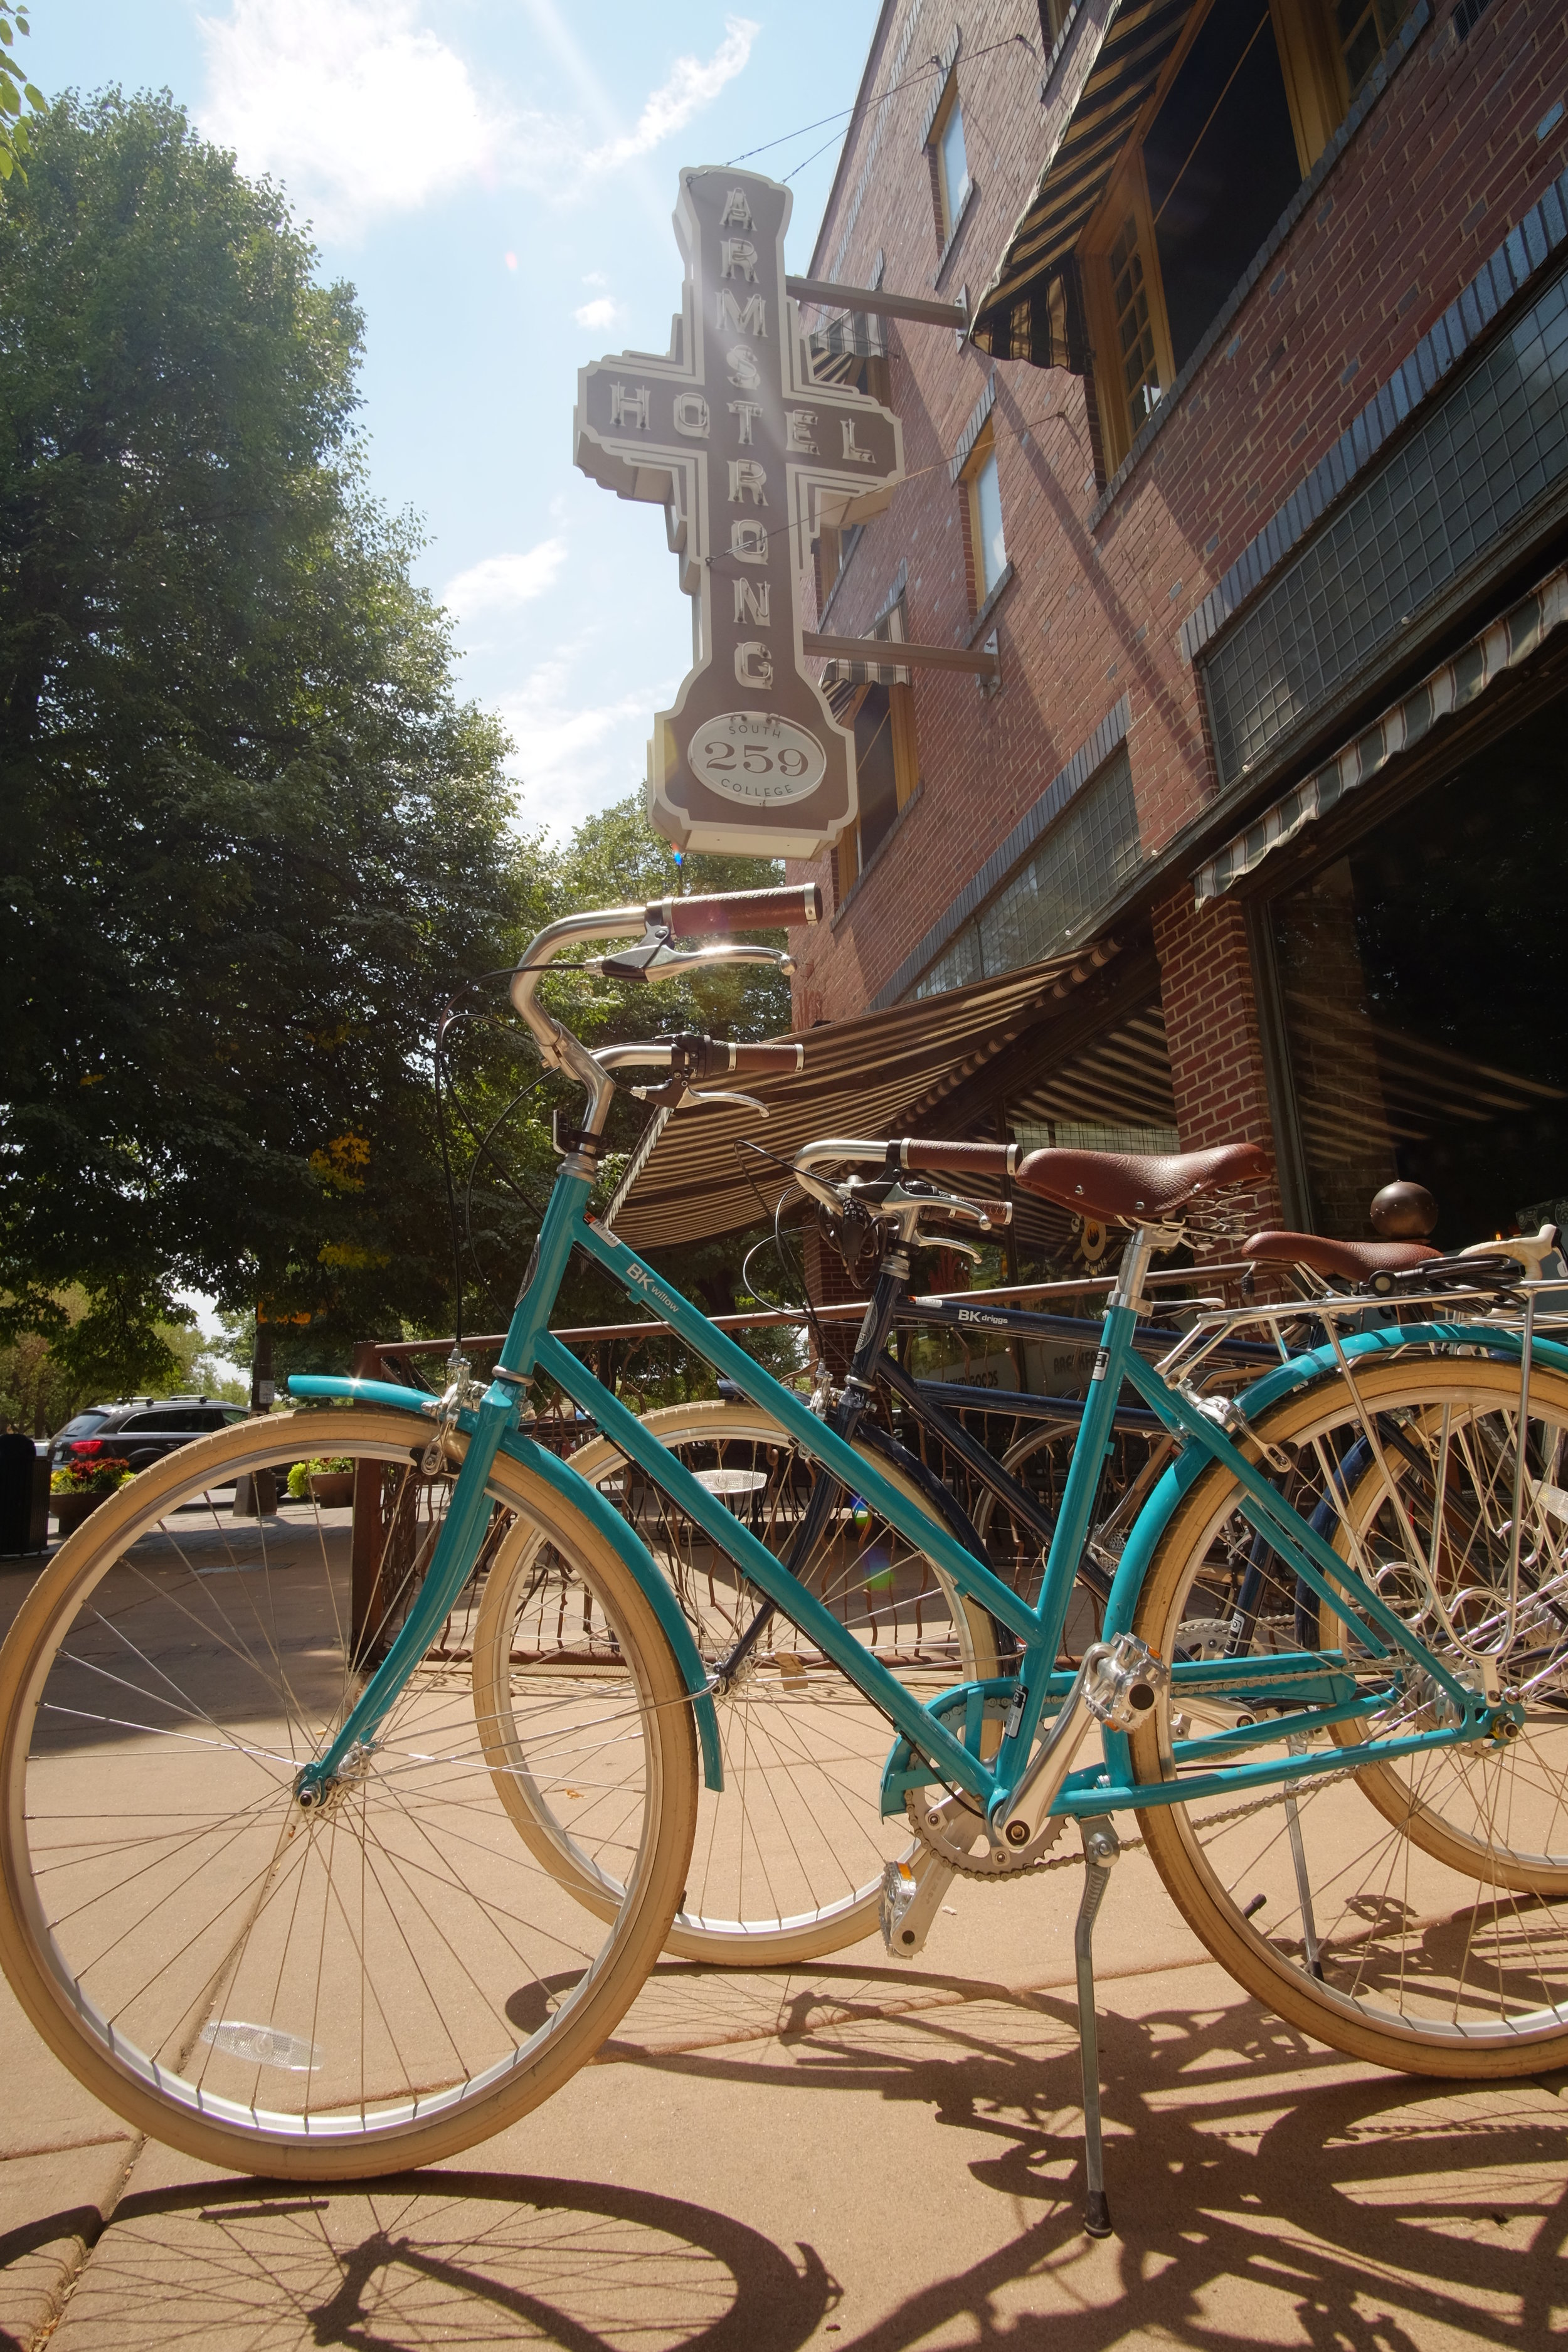 The Armstrong Hotel in Old Town Square is a bike friendly lodging option with these beautiful bikes!